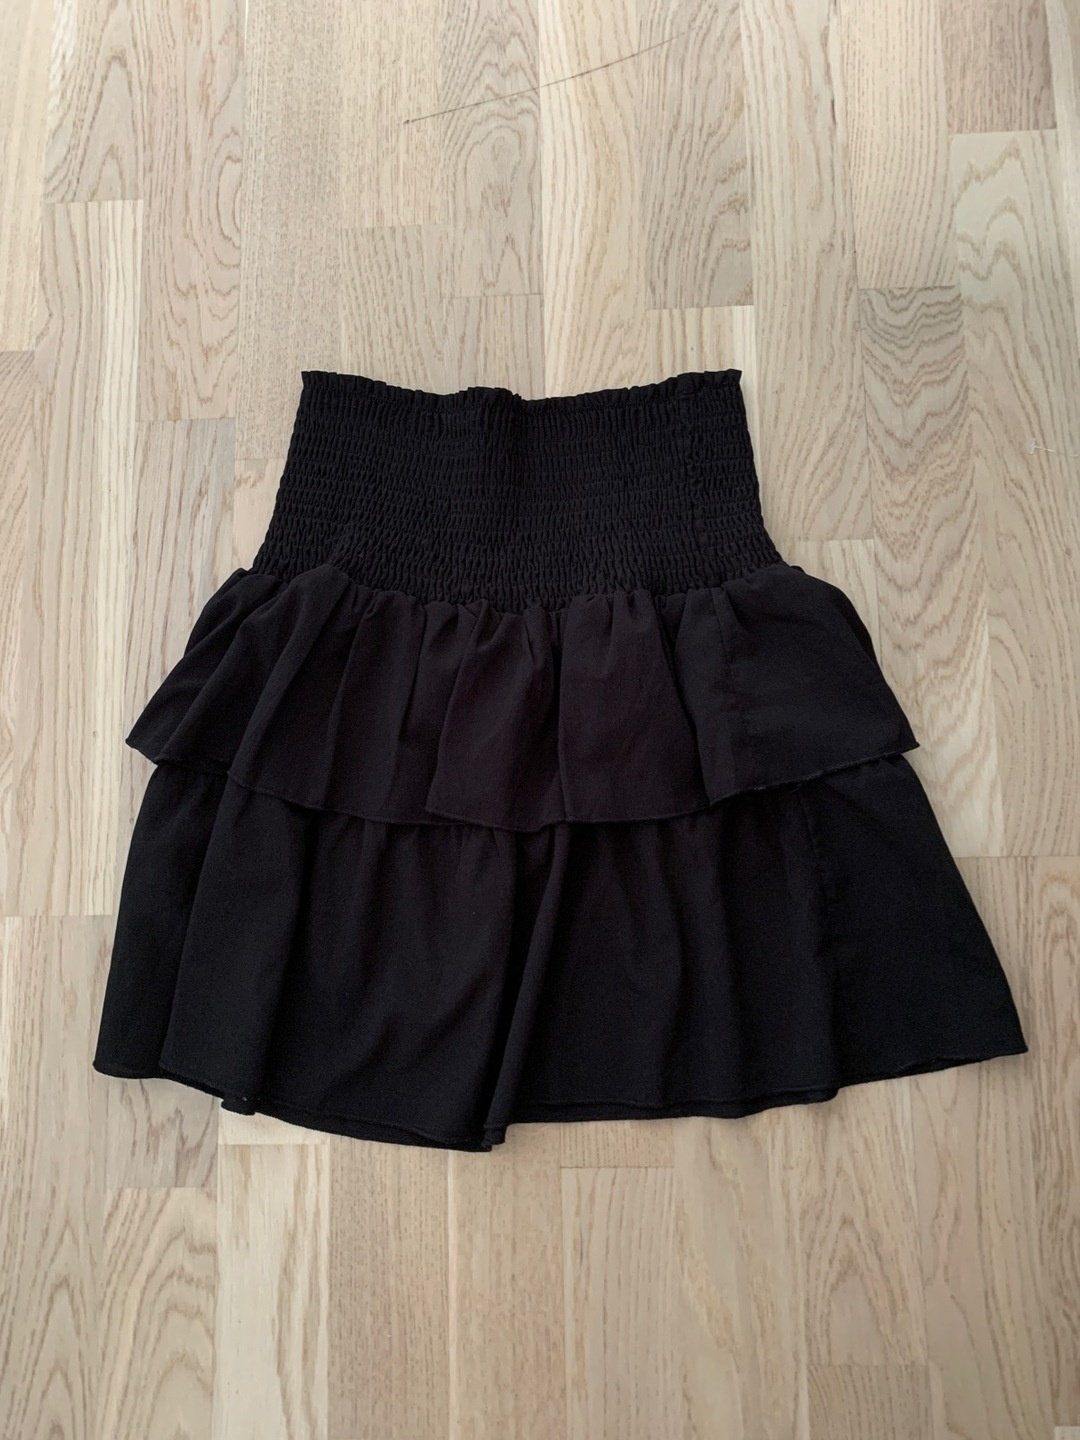 Women's skirts - PROJECT UNKOWN photo 2